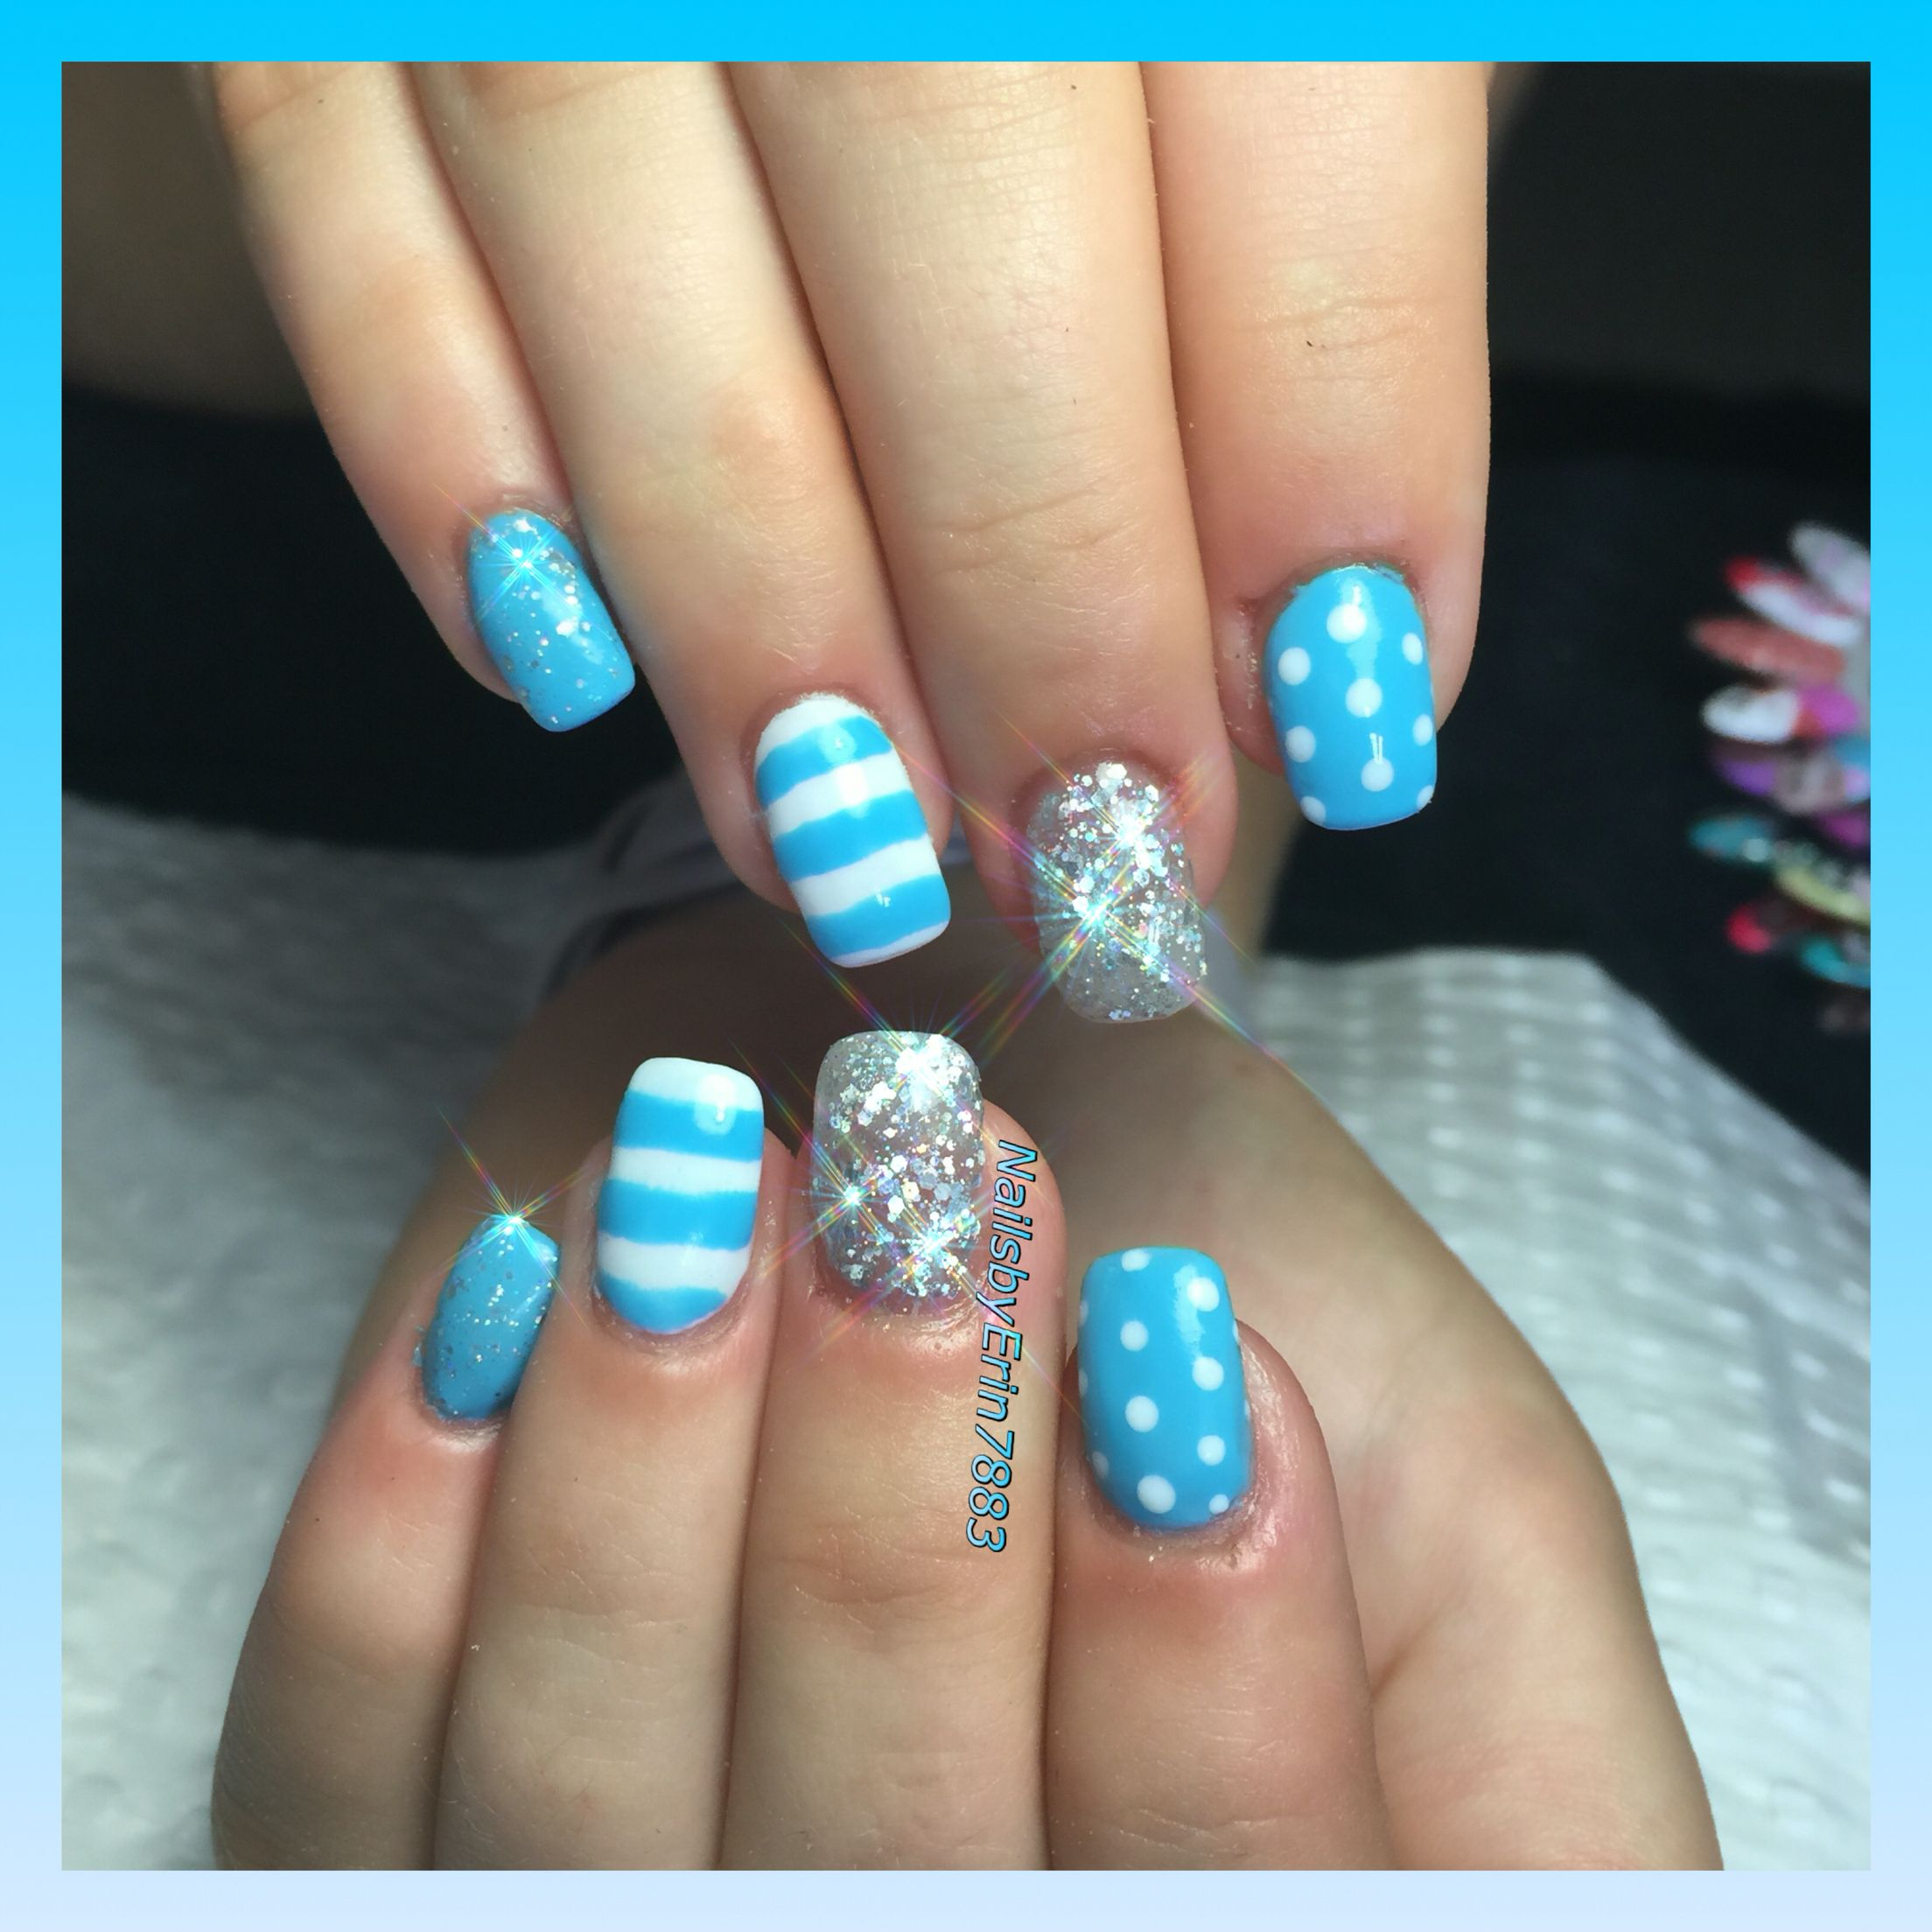 Baby Blue Acrylic Nails With Silver Bling Stripes And Lines